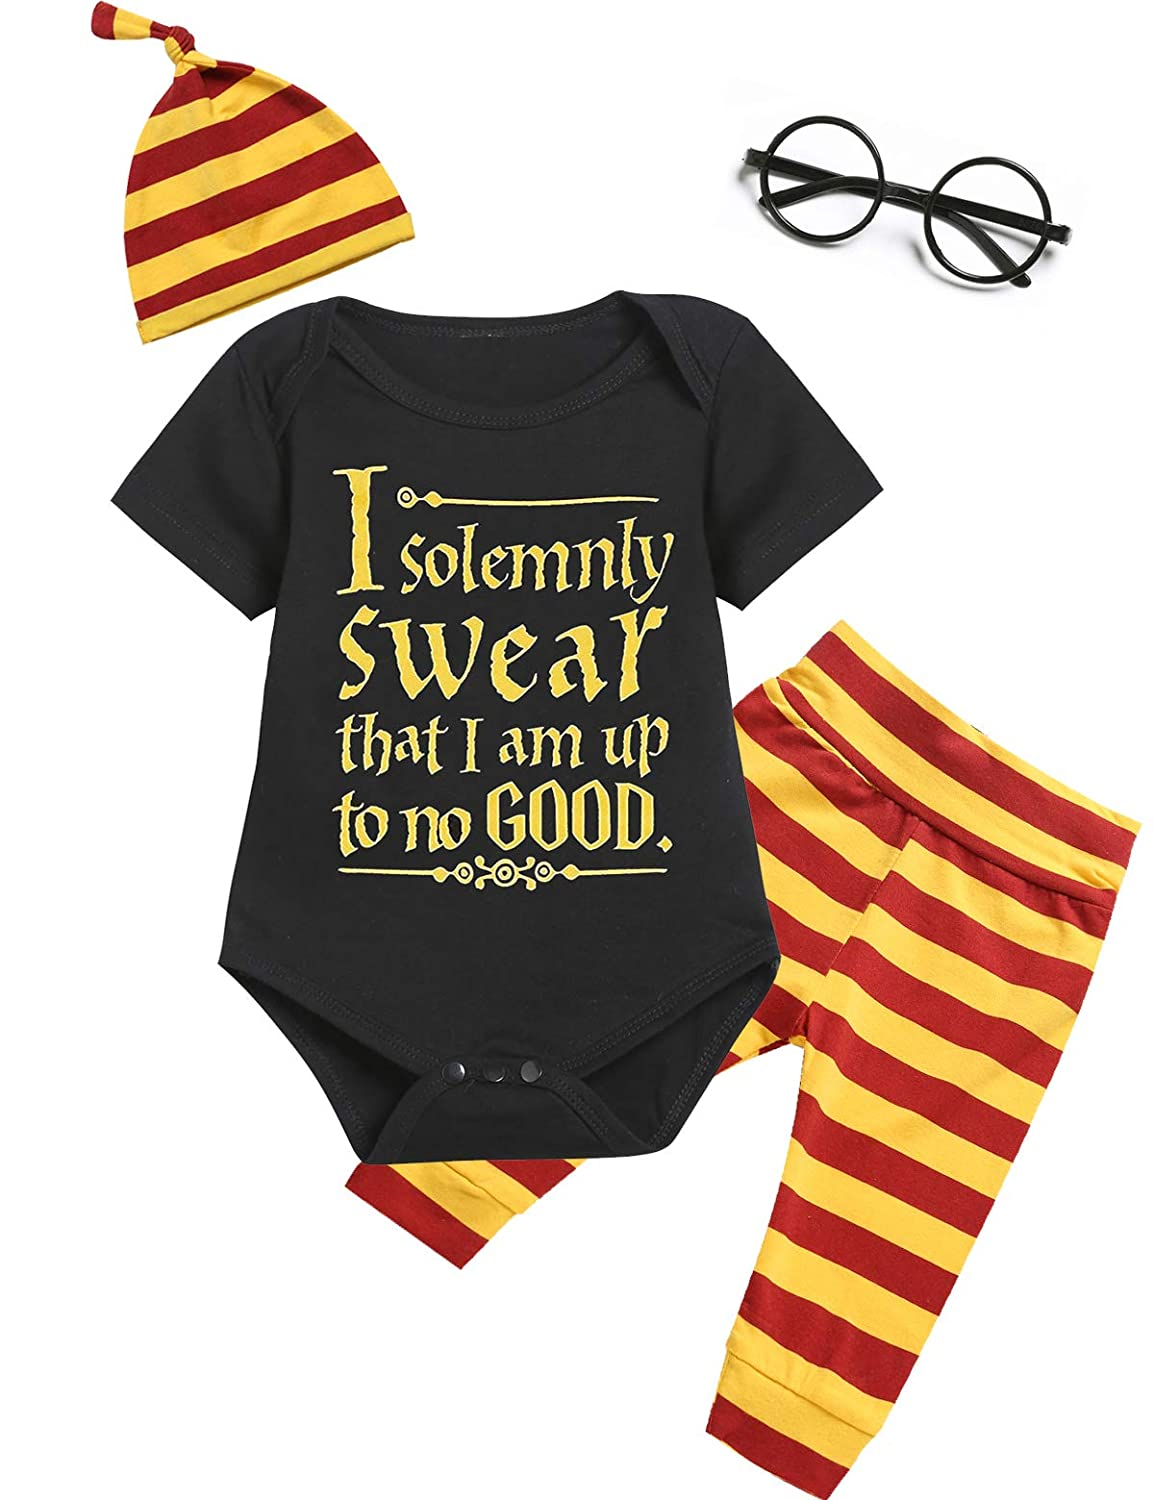 Outfit Set Baby Boy Girls I Solemnly Swear That I am Up to No Good Romper